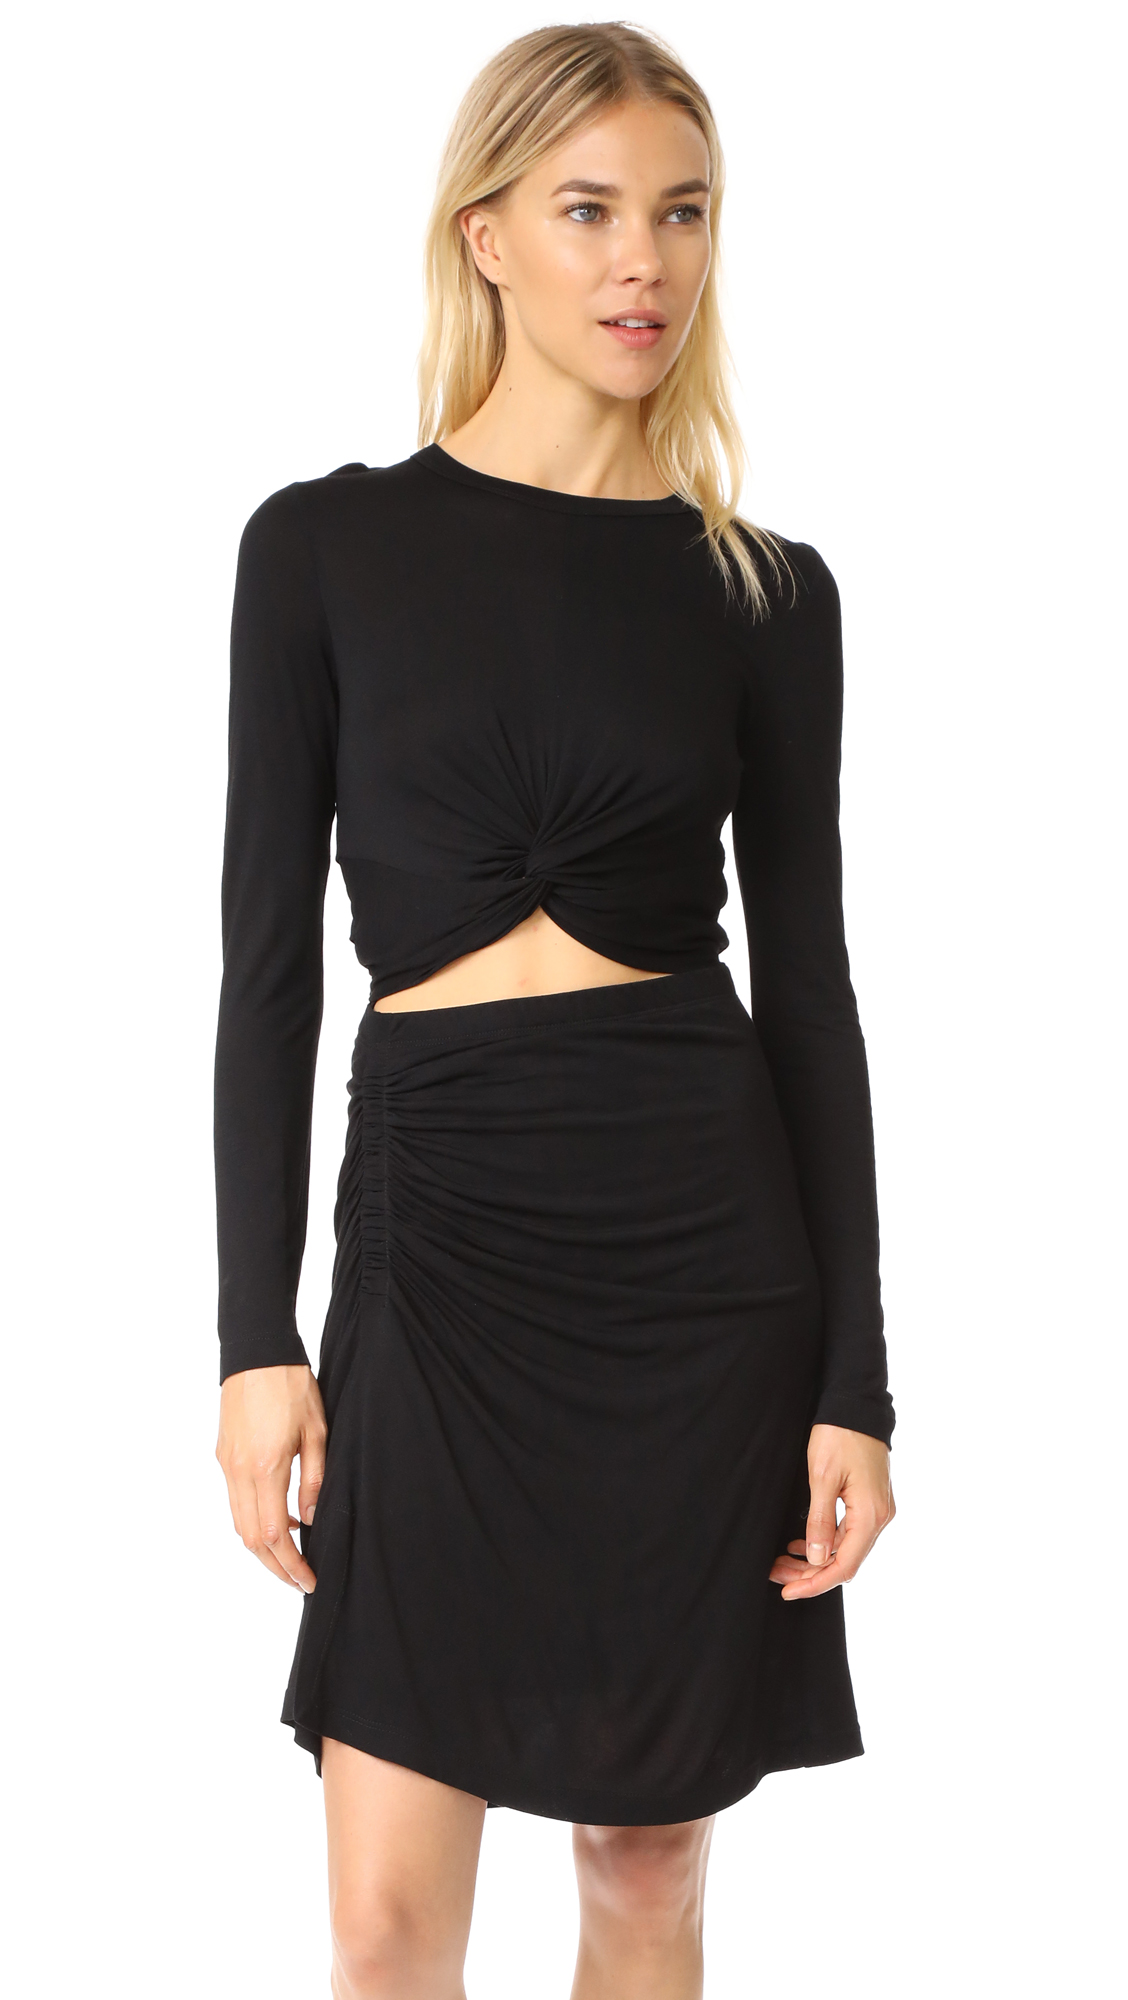 A.L.C. Georgi Dress - Black